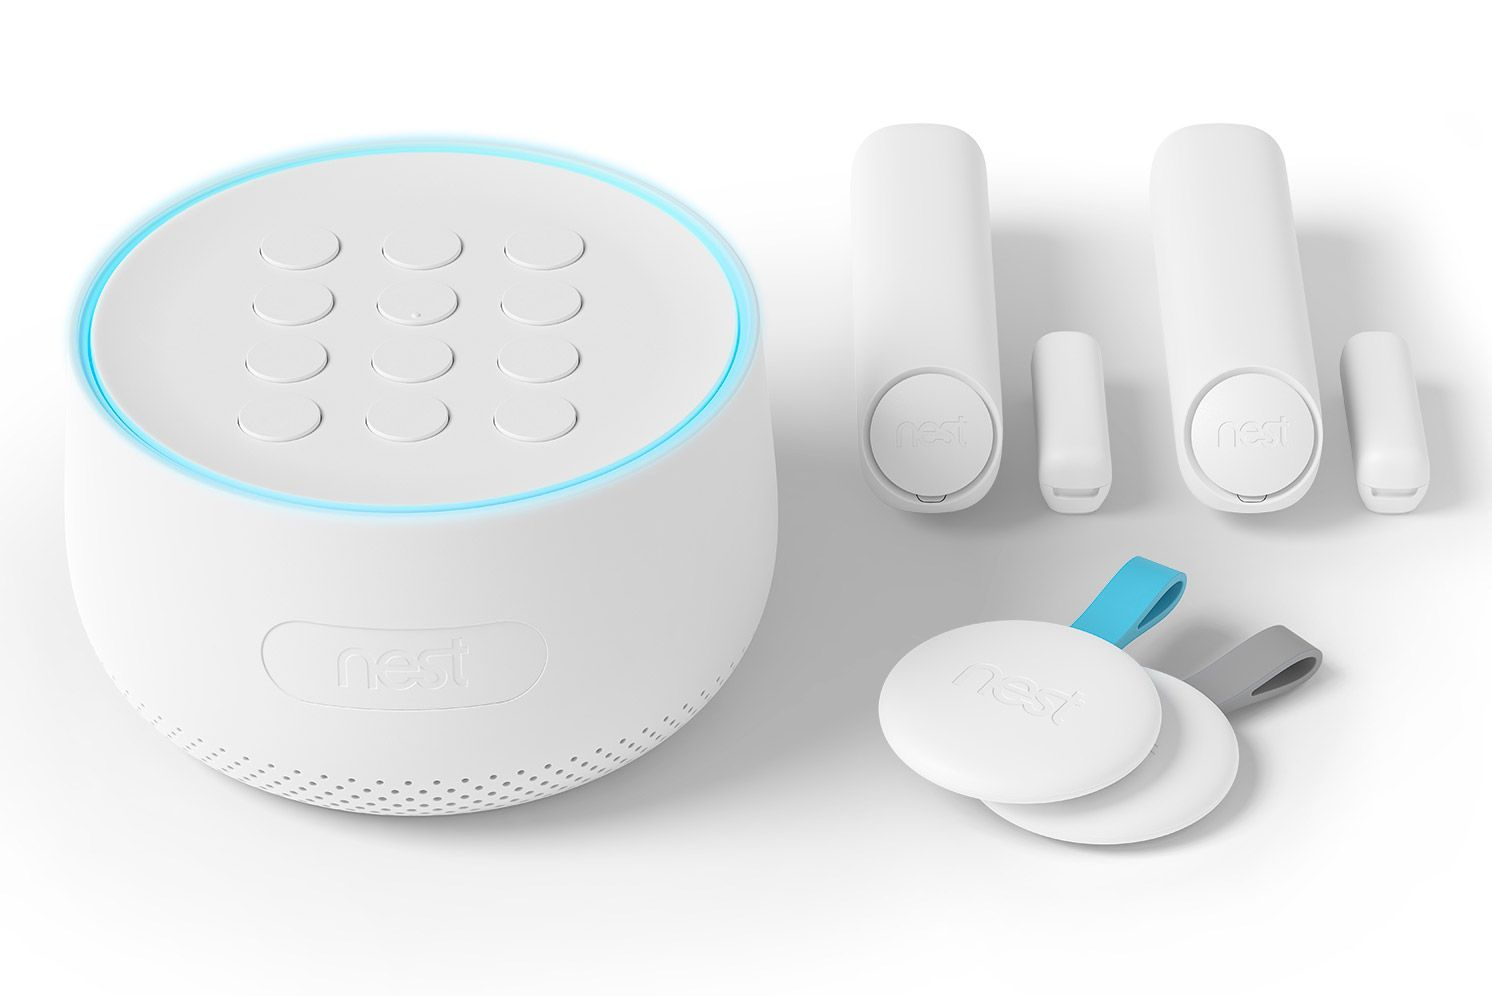 Includes Nest Guard Alarm Keypad And Motion Sensor 2 Nest Detect Sensors Sensors Th Security Cameras For Home Wireless Home Security Systems Alarm System